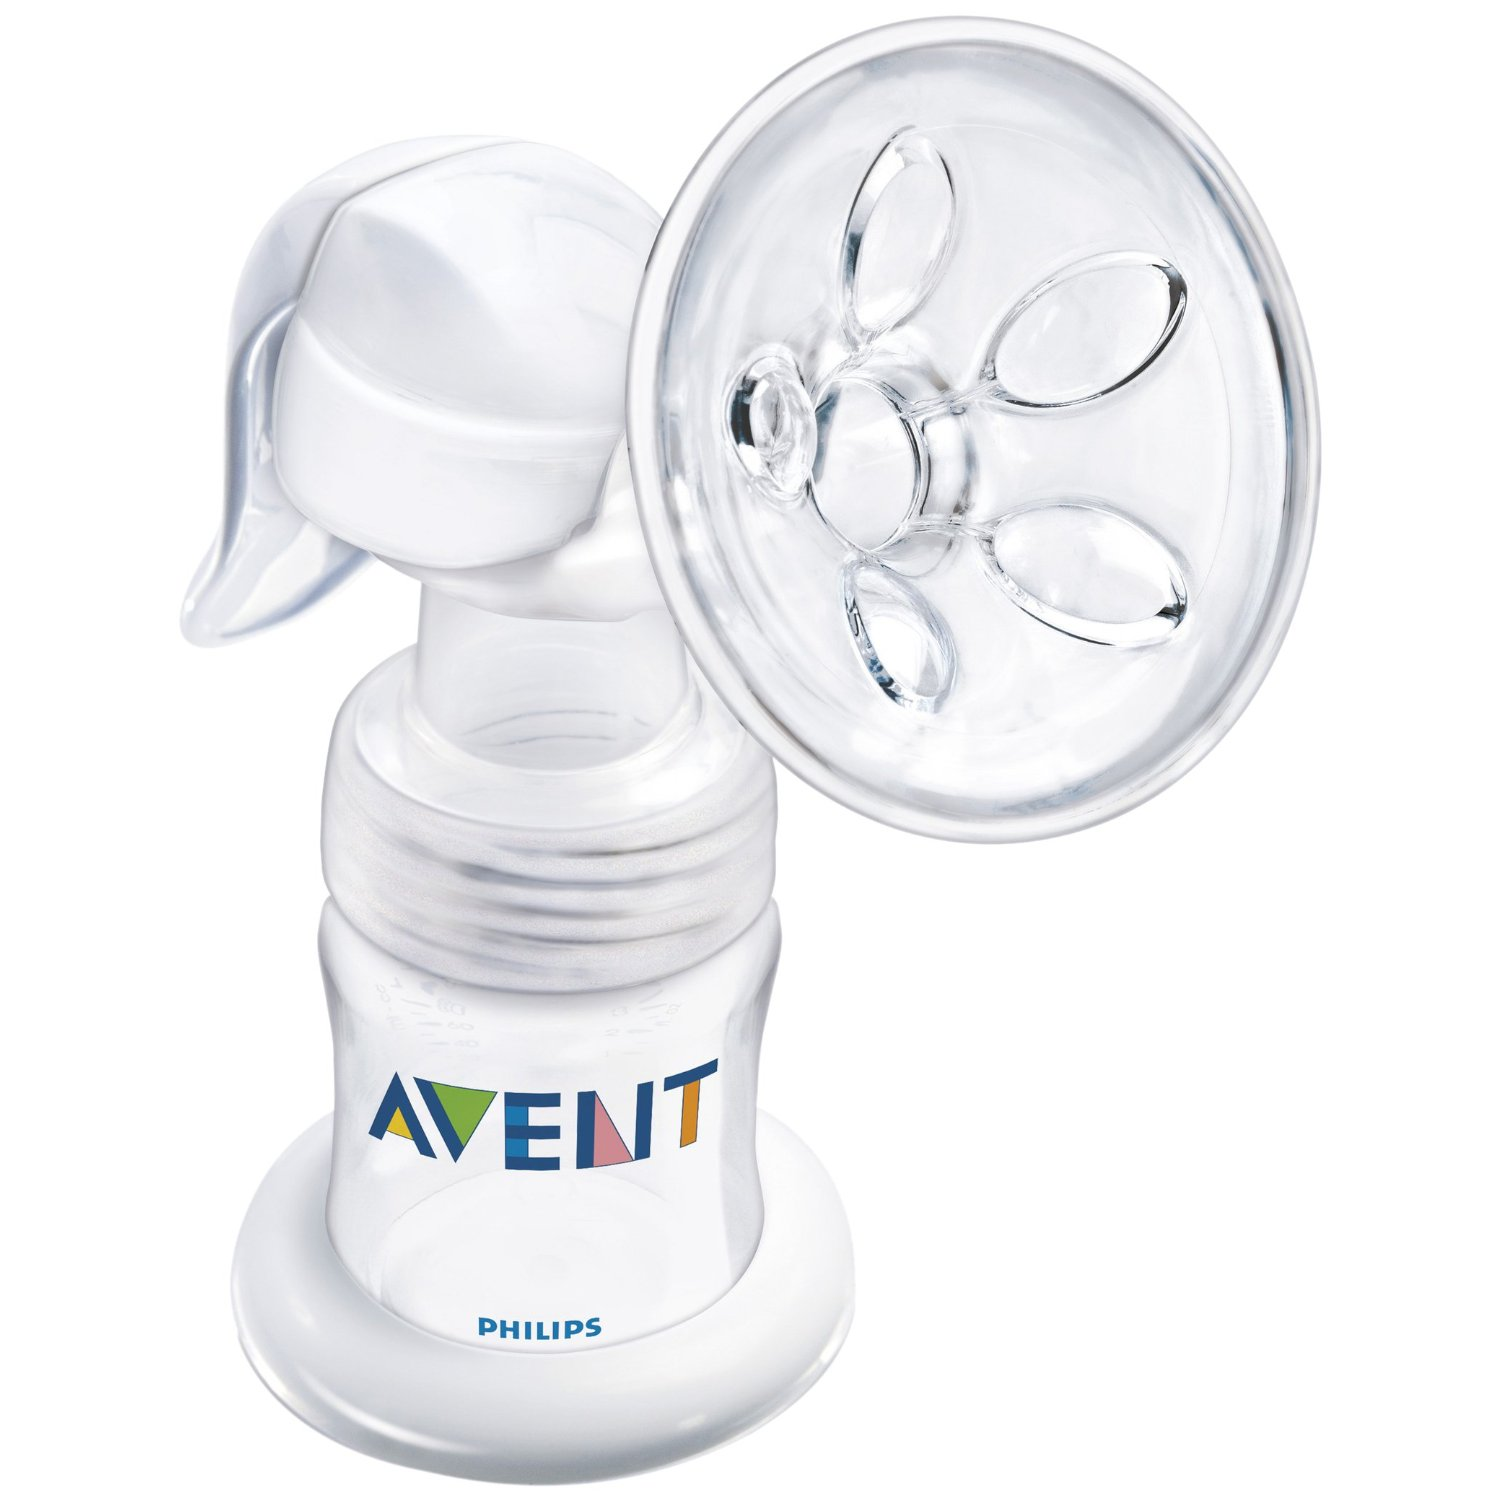 philips avent manual breast pump instructions